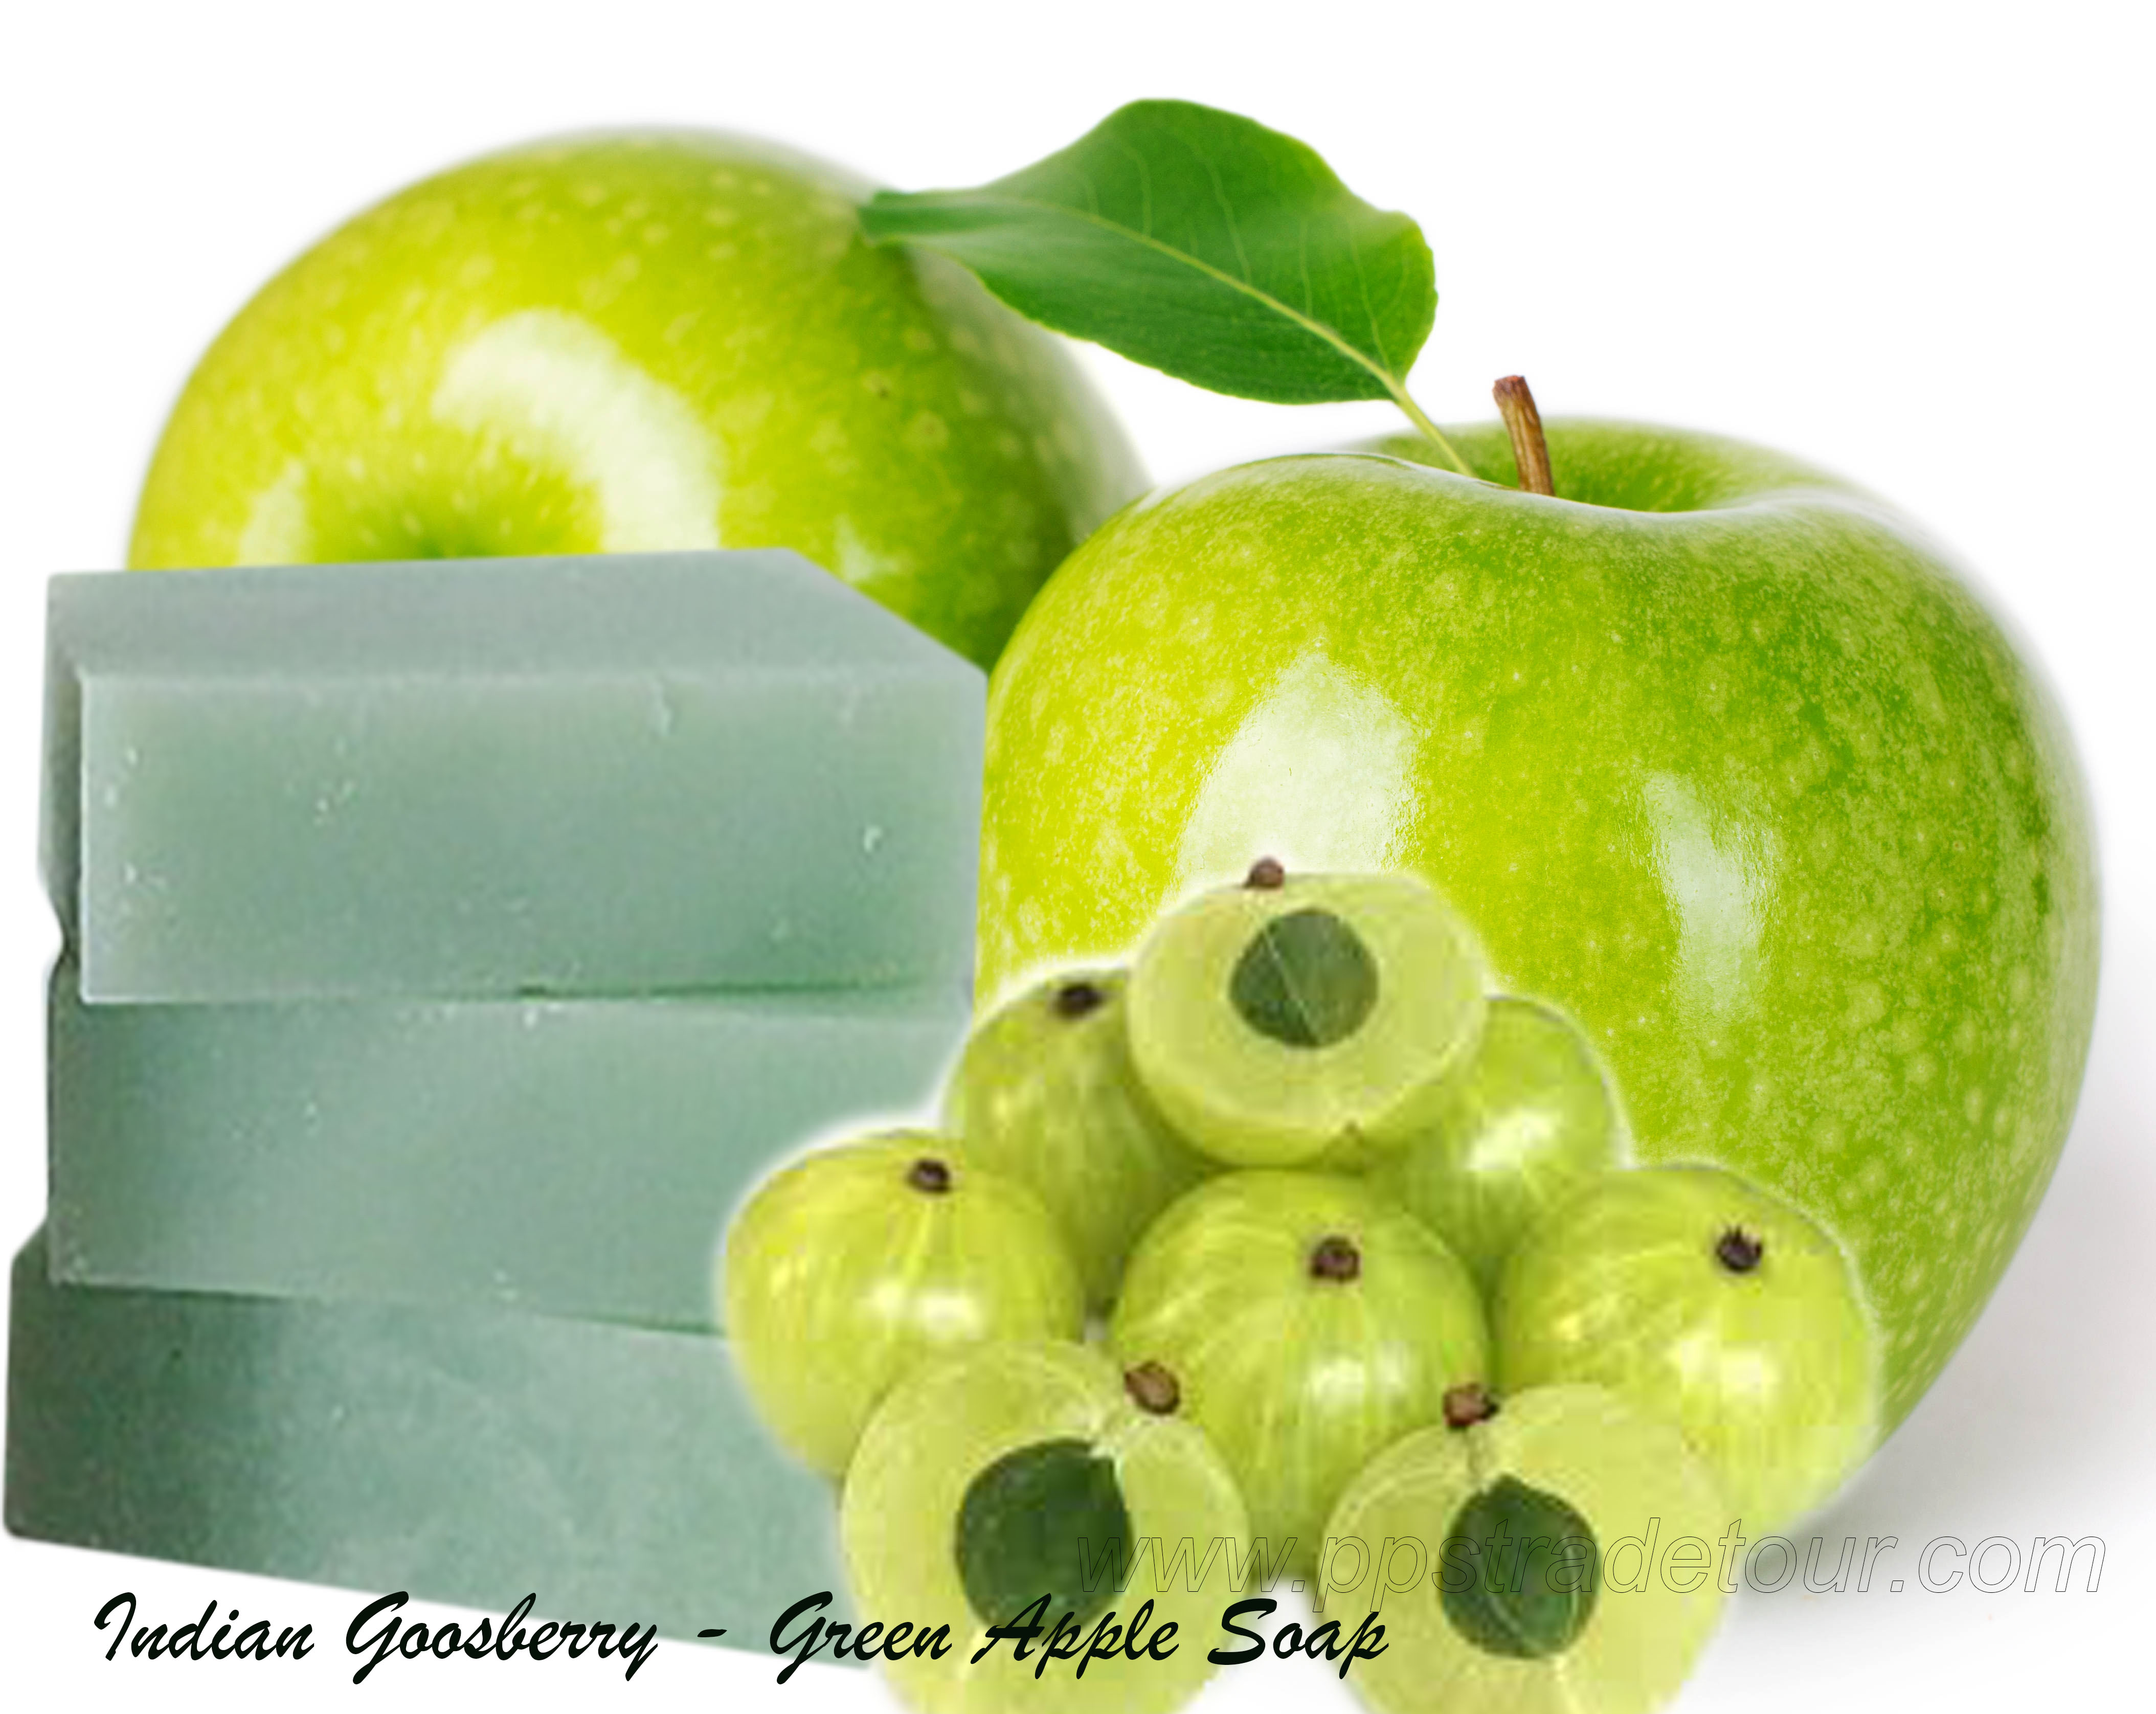 Indian Goosberry-Green Apple Soap